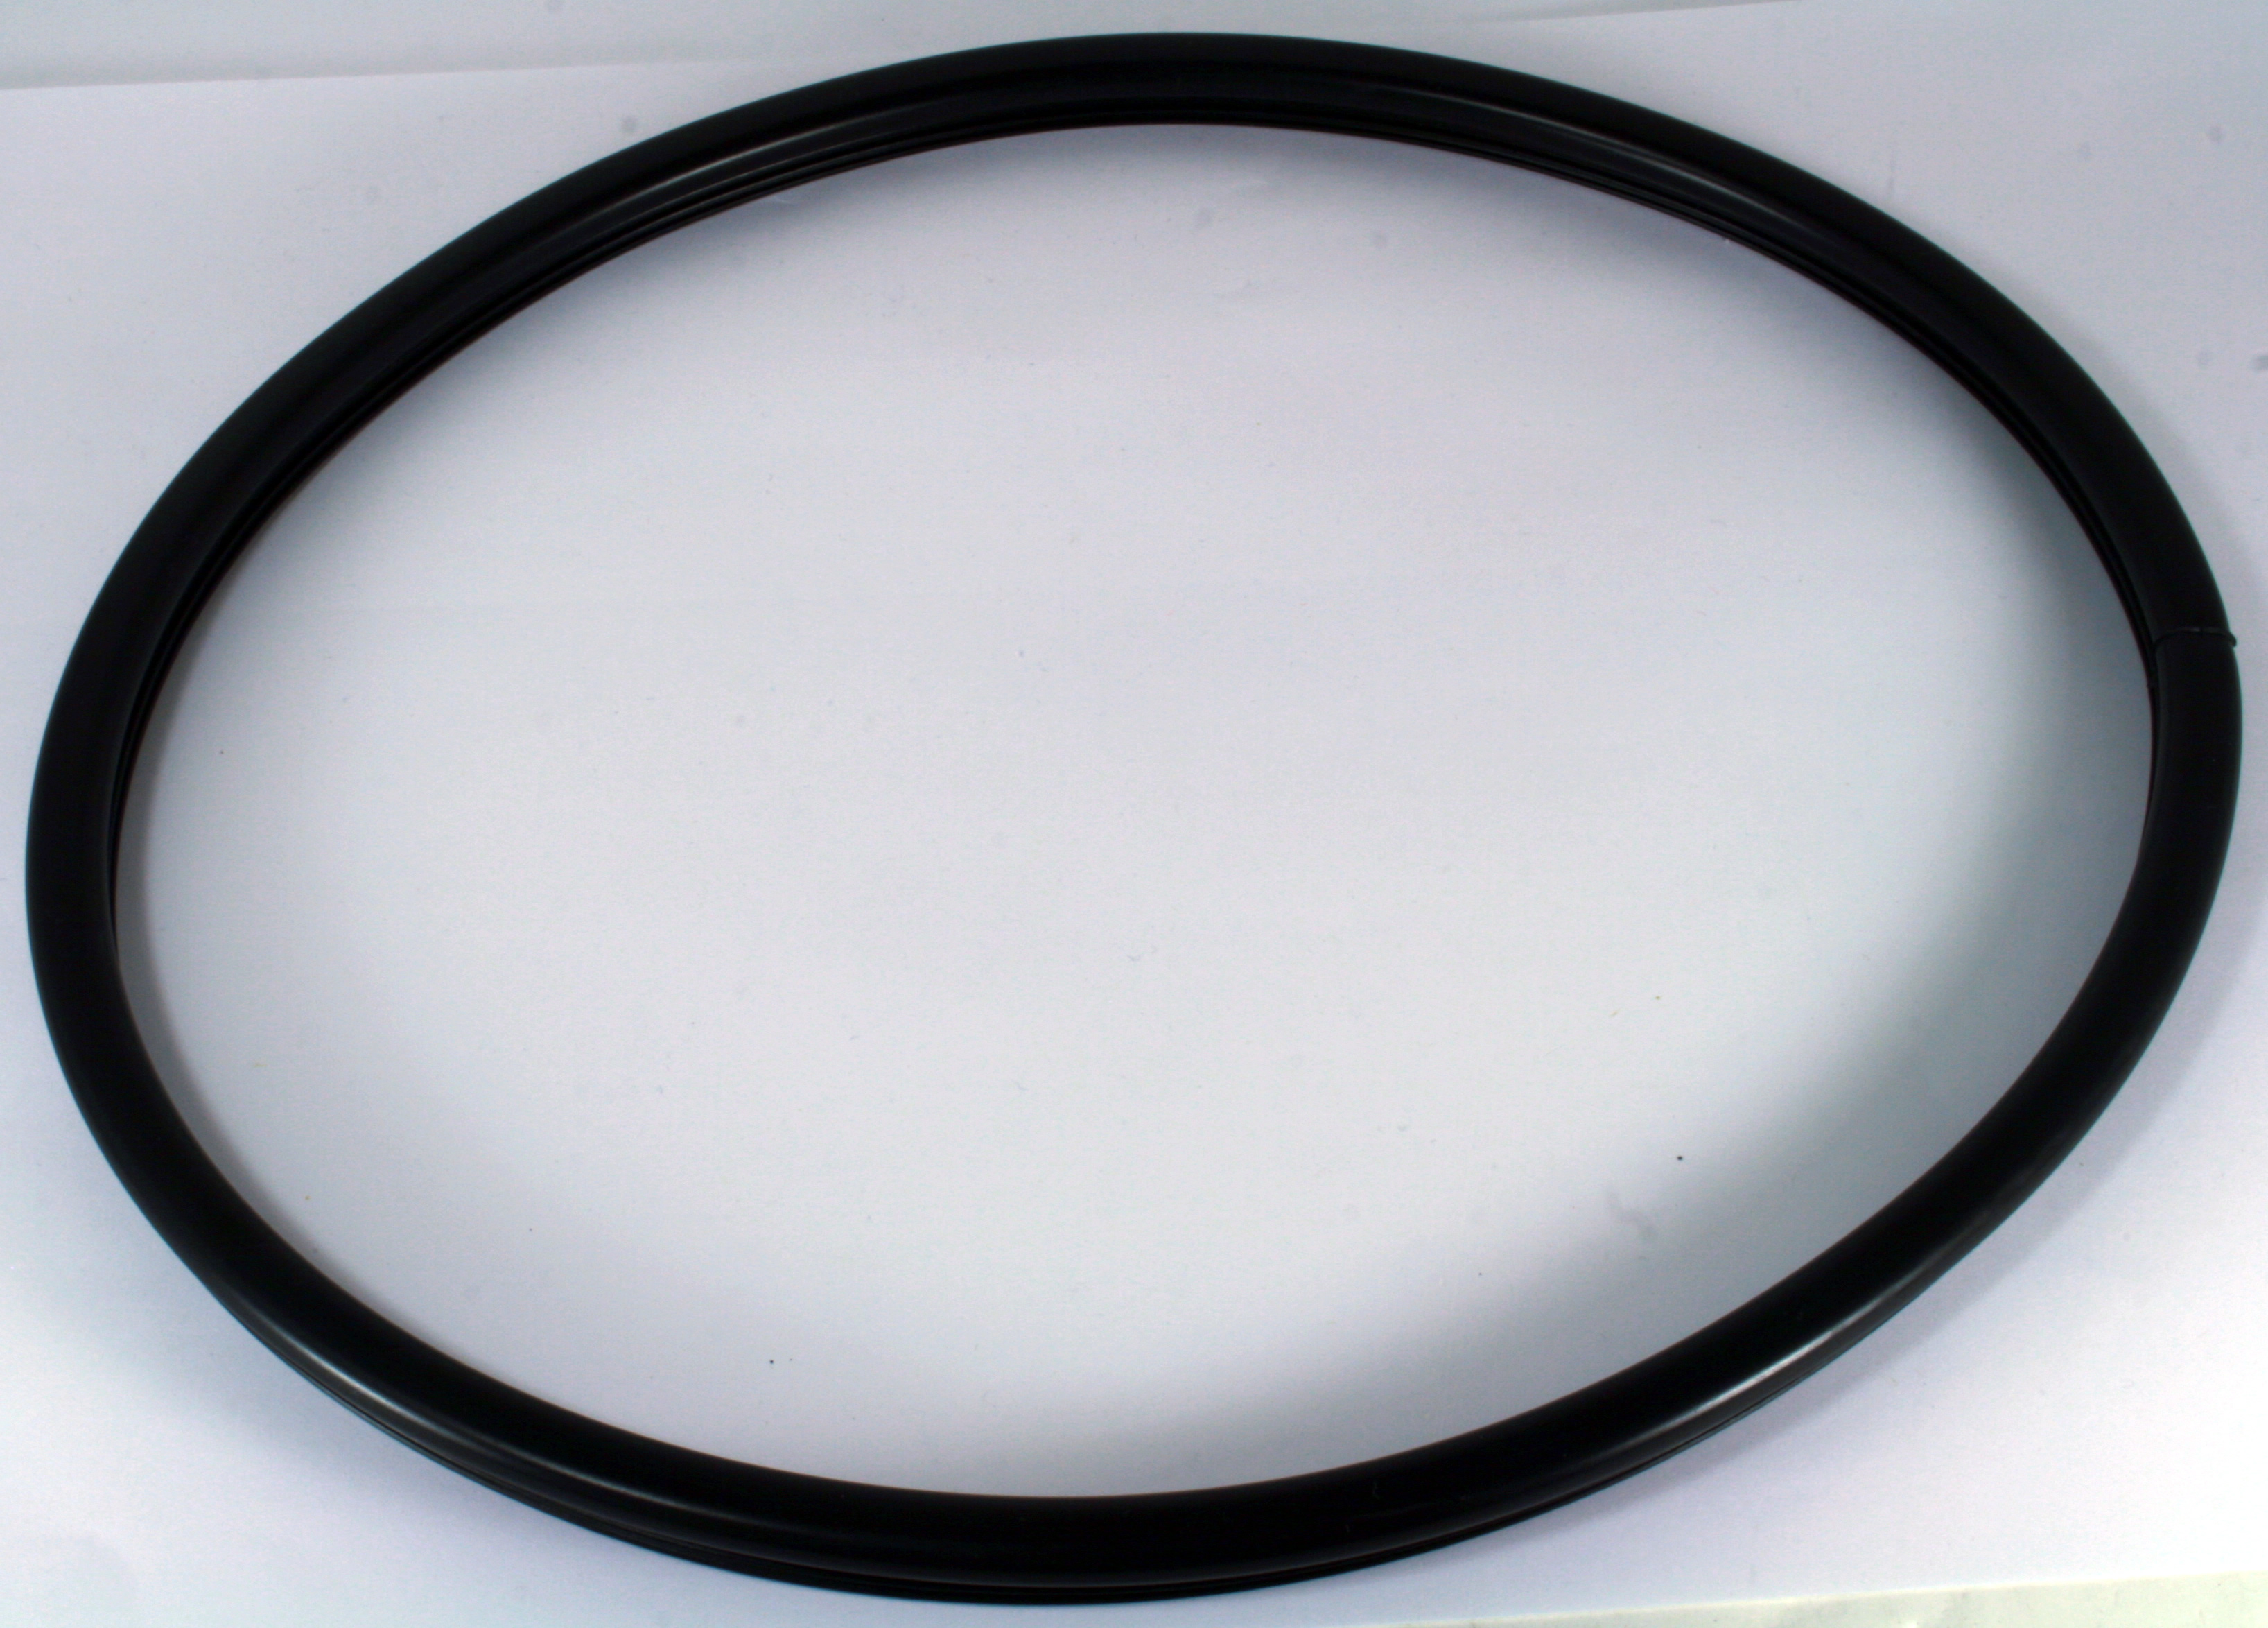 H15187M Pomeco New Multiport Cover Gasket for RTC Series Covers.